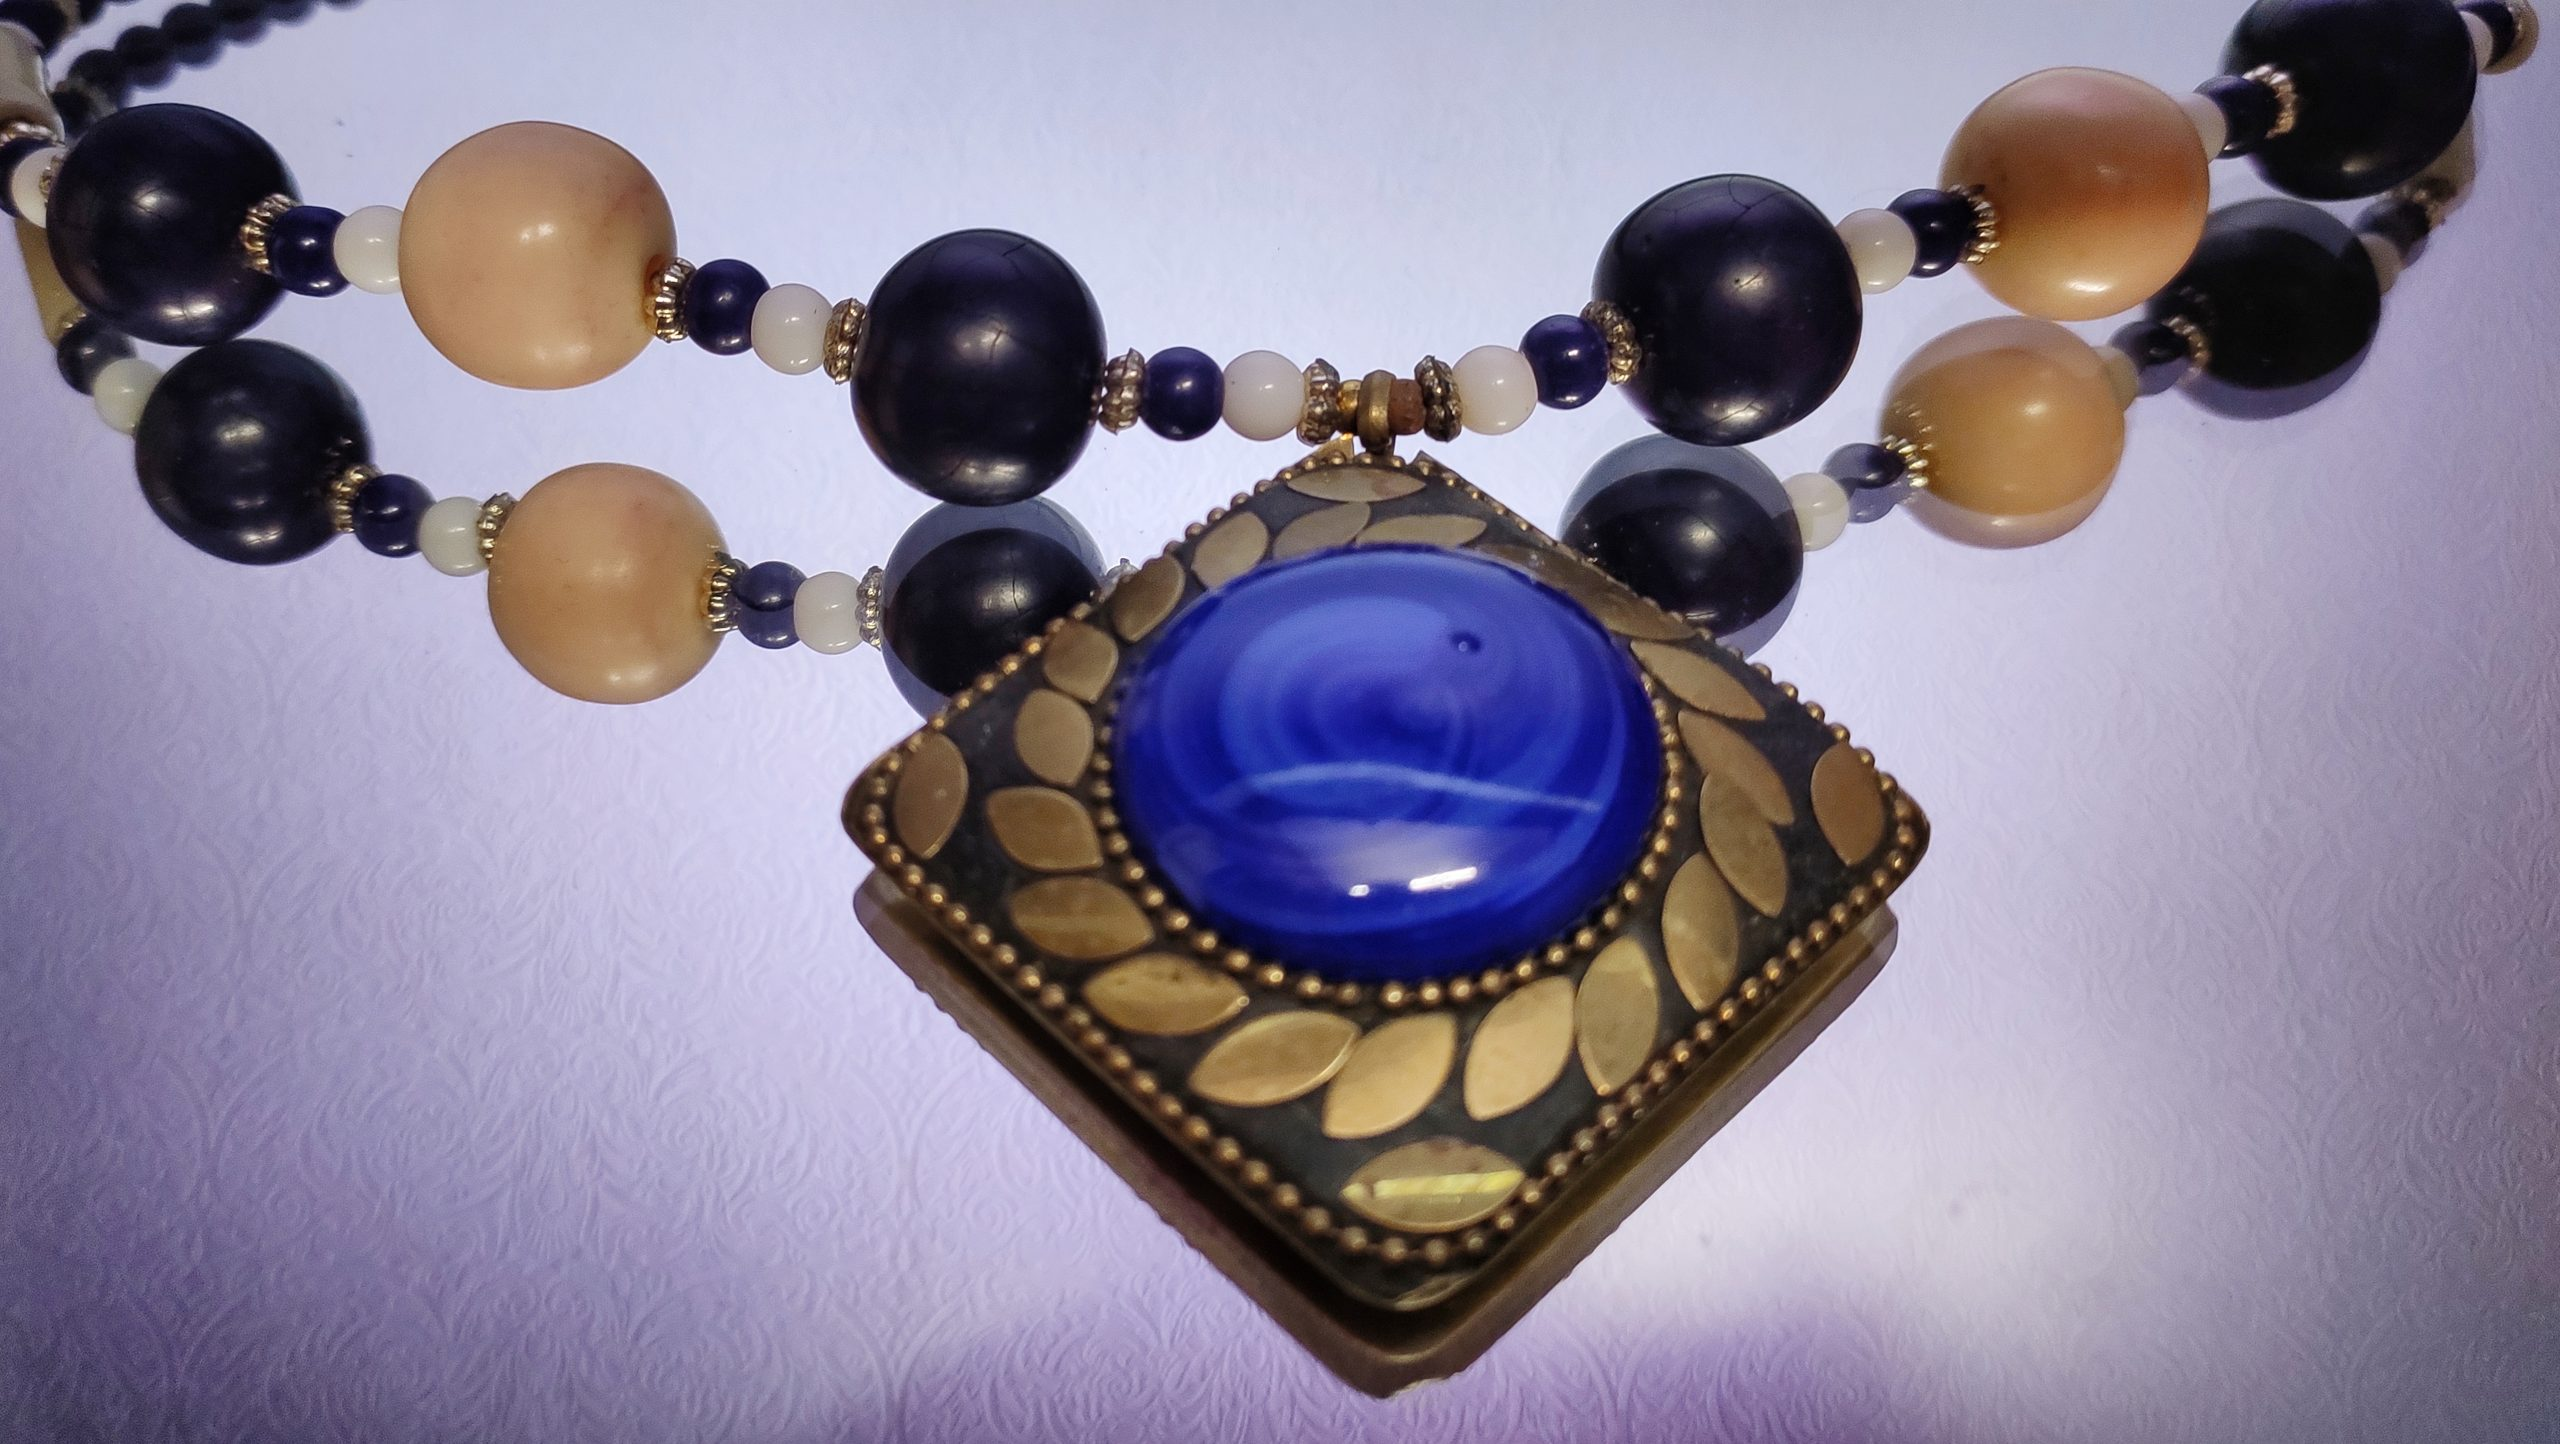 A necklace with gems